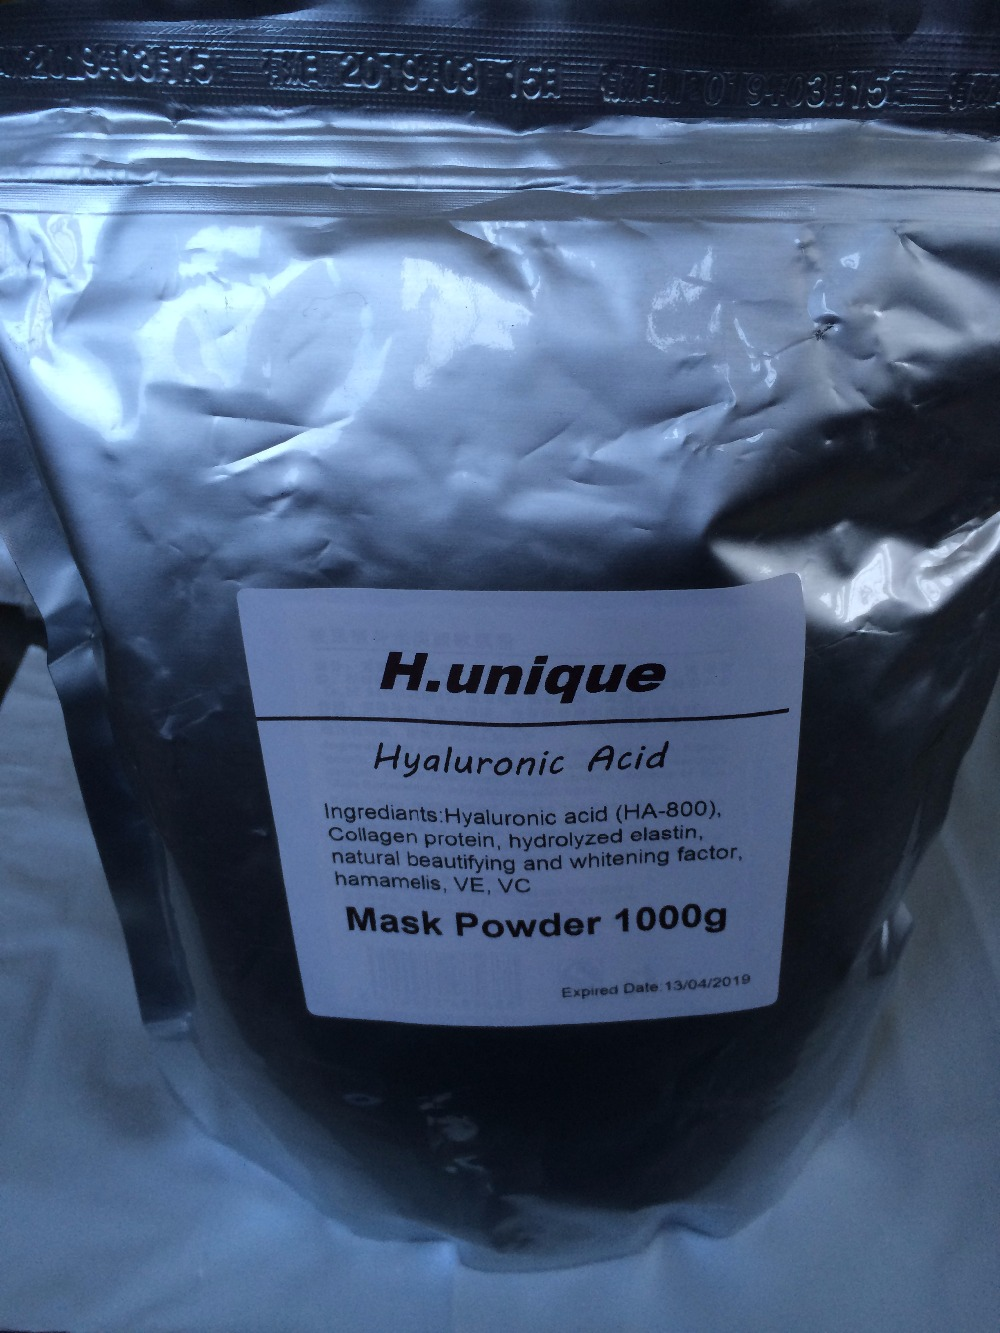 Hyaluronic Acid Whitening Scars Acne Control Soft Powder Firming Lifting Anti Aging Hospital Equipment<br>